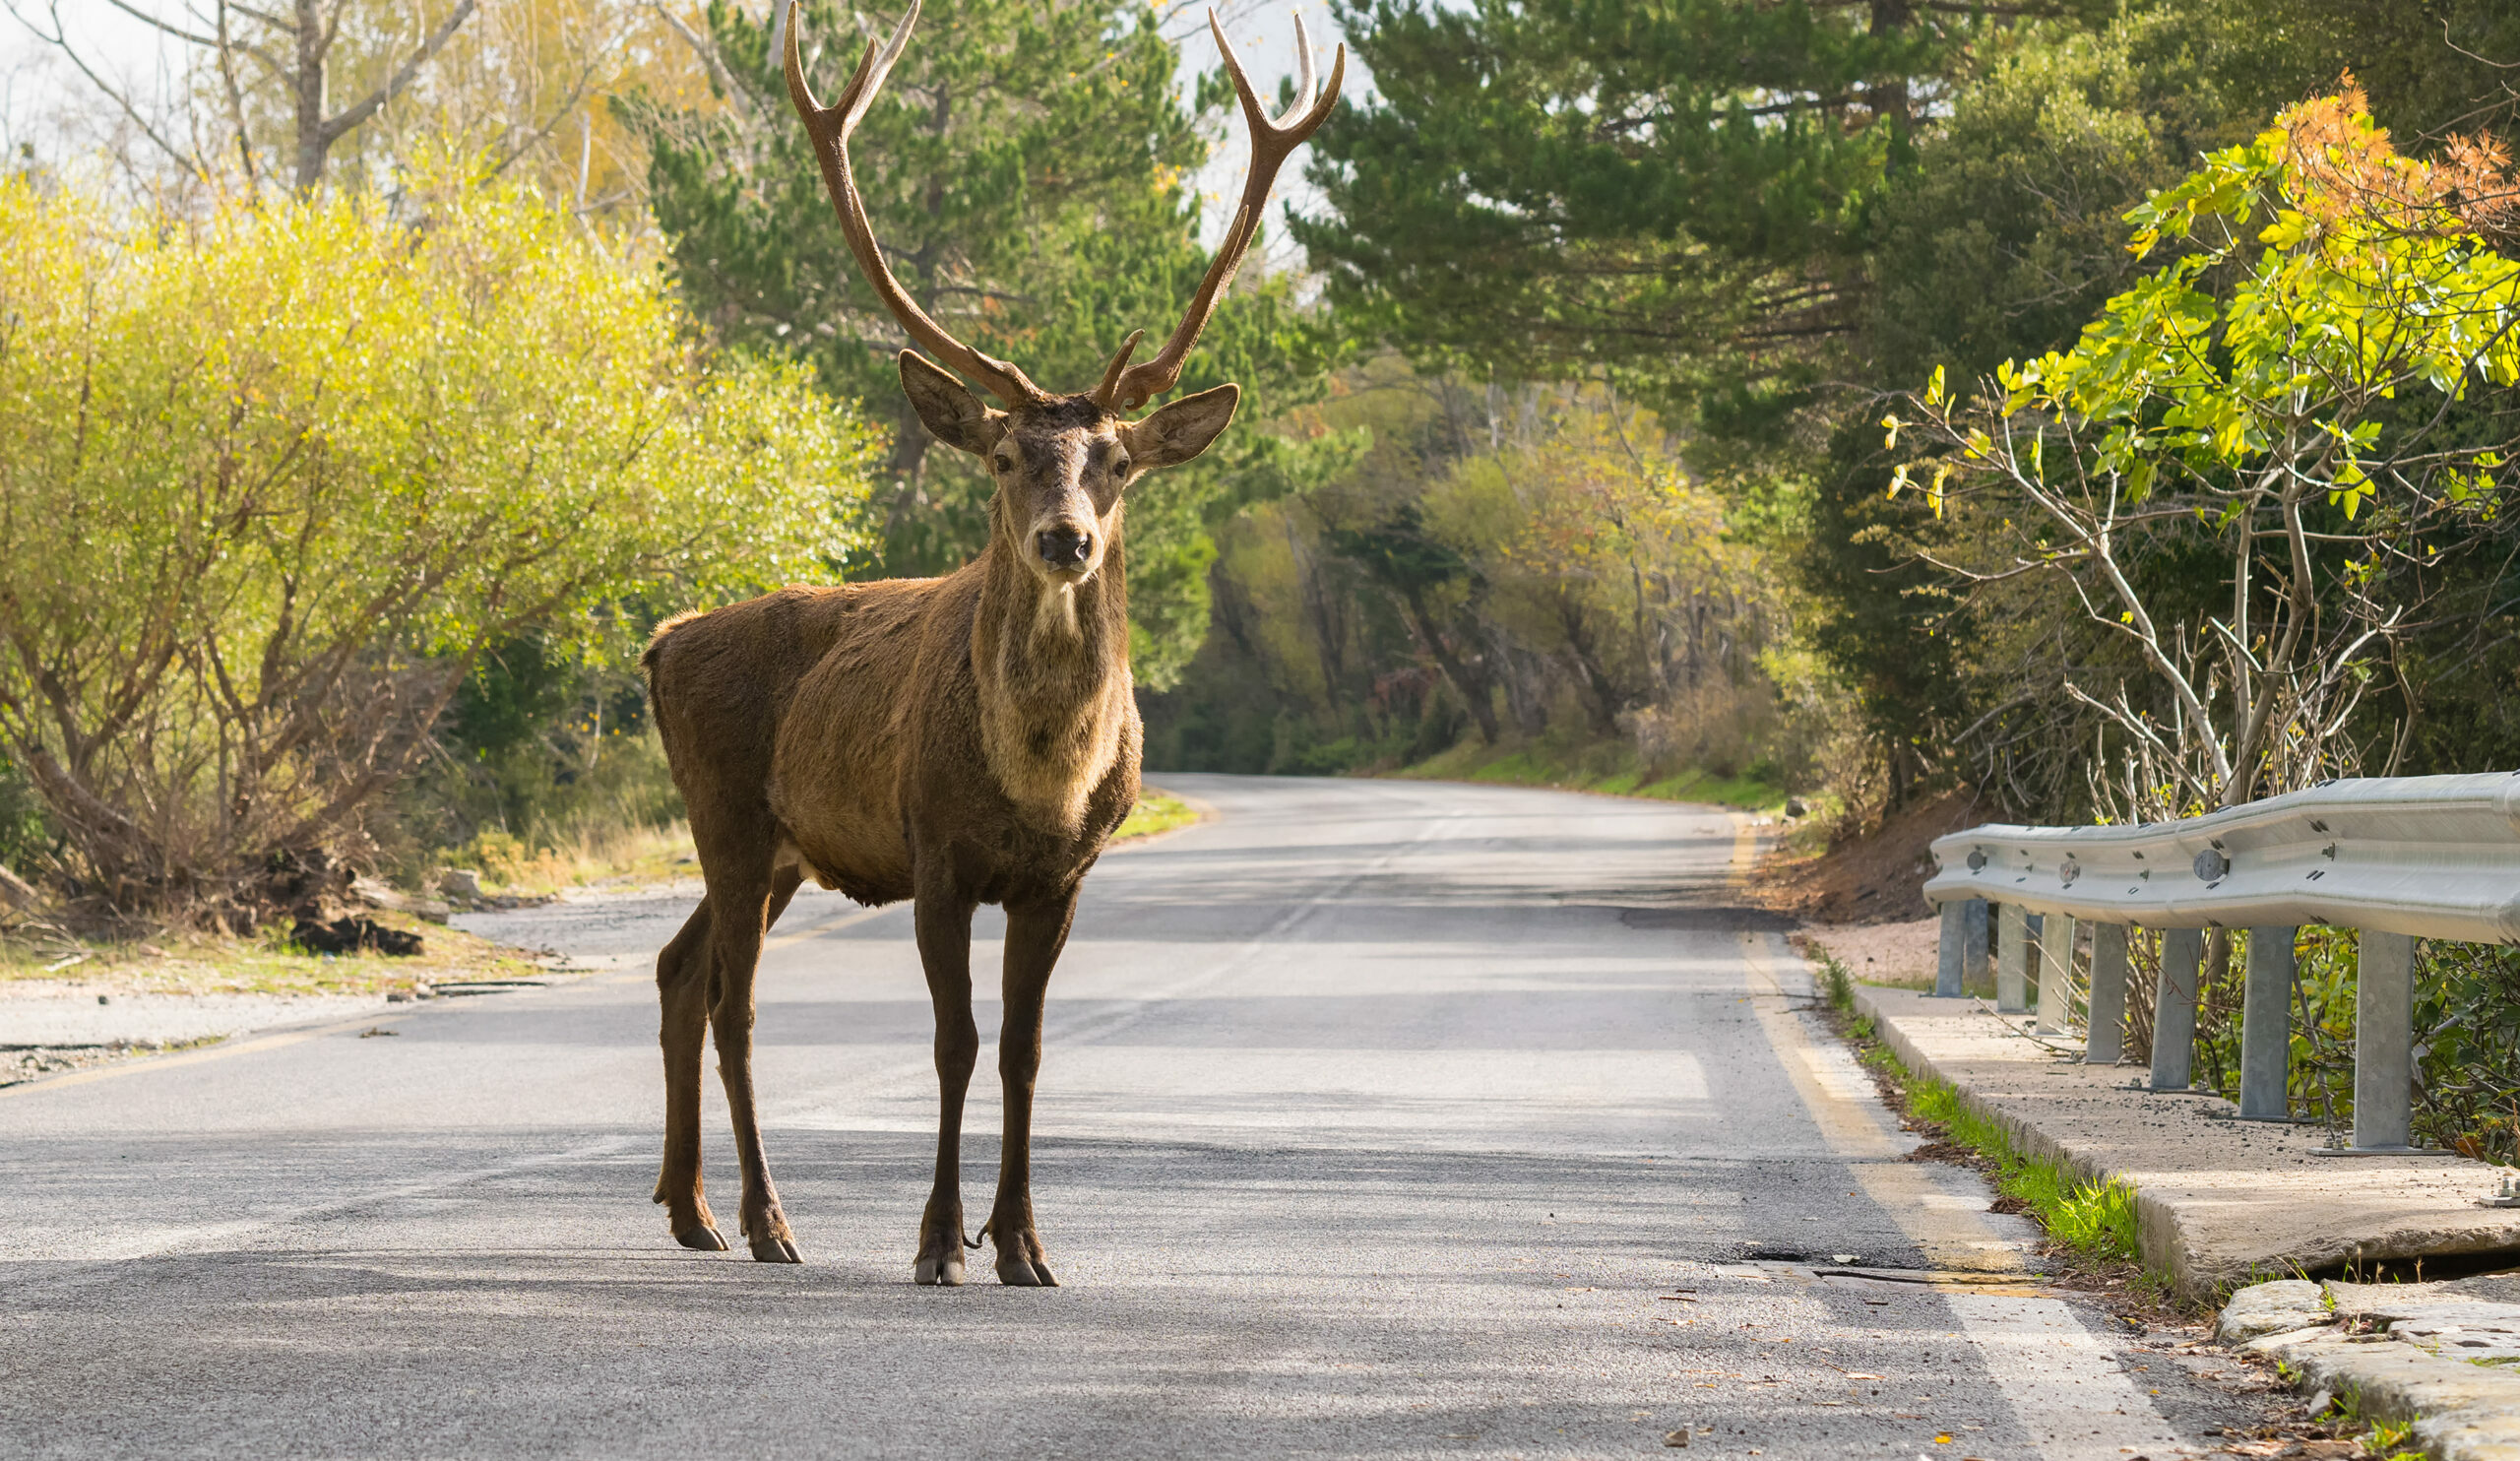 Attica: Mount Parnitha and its red deer